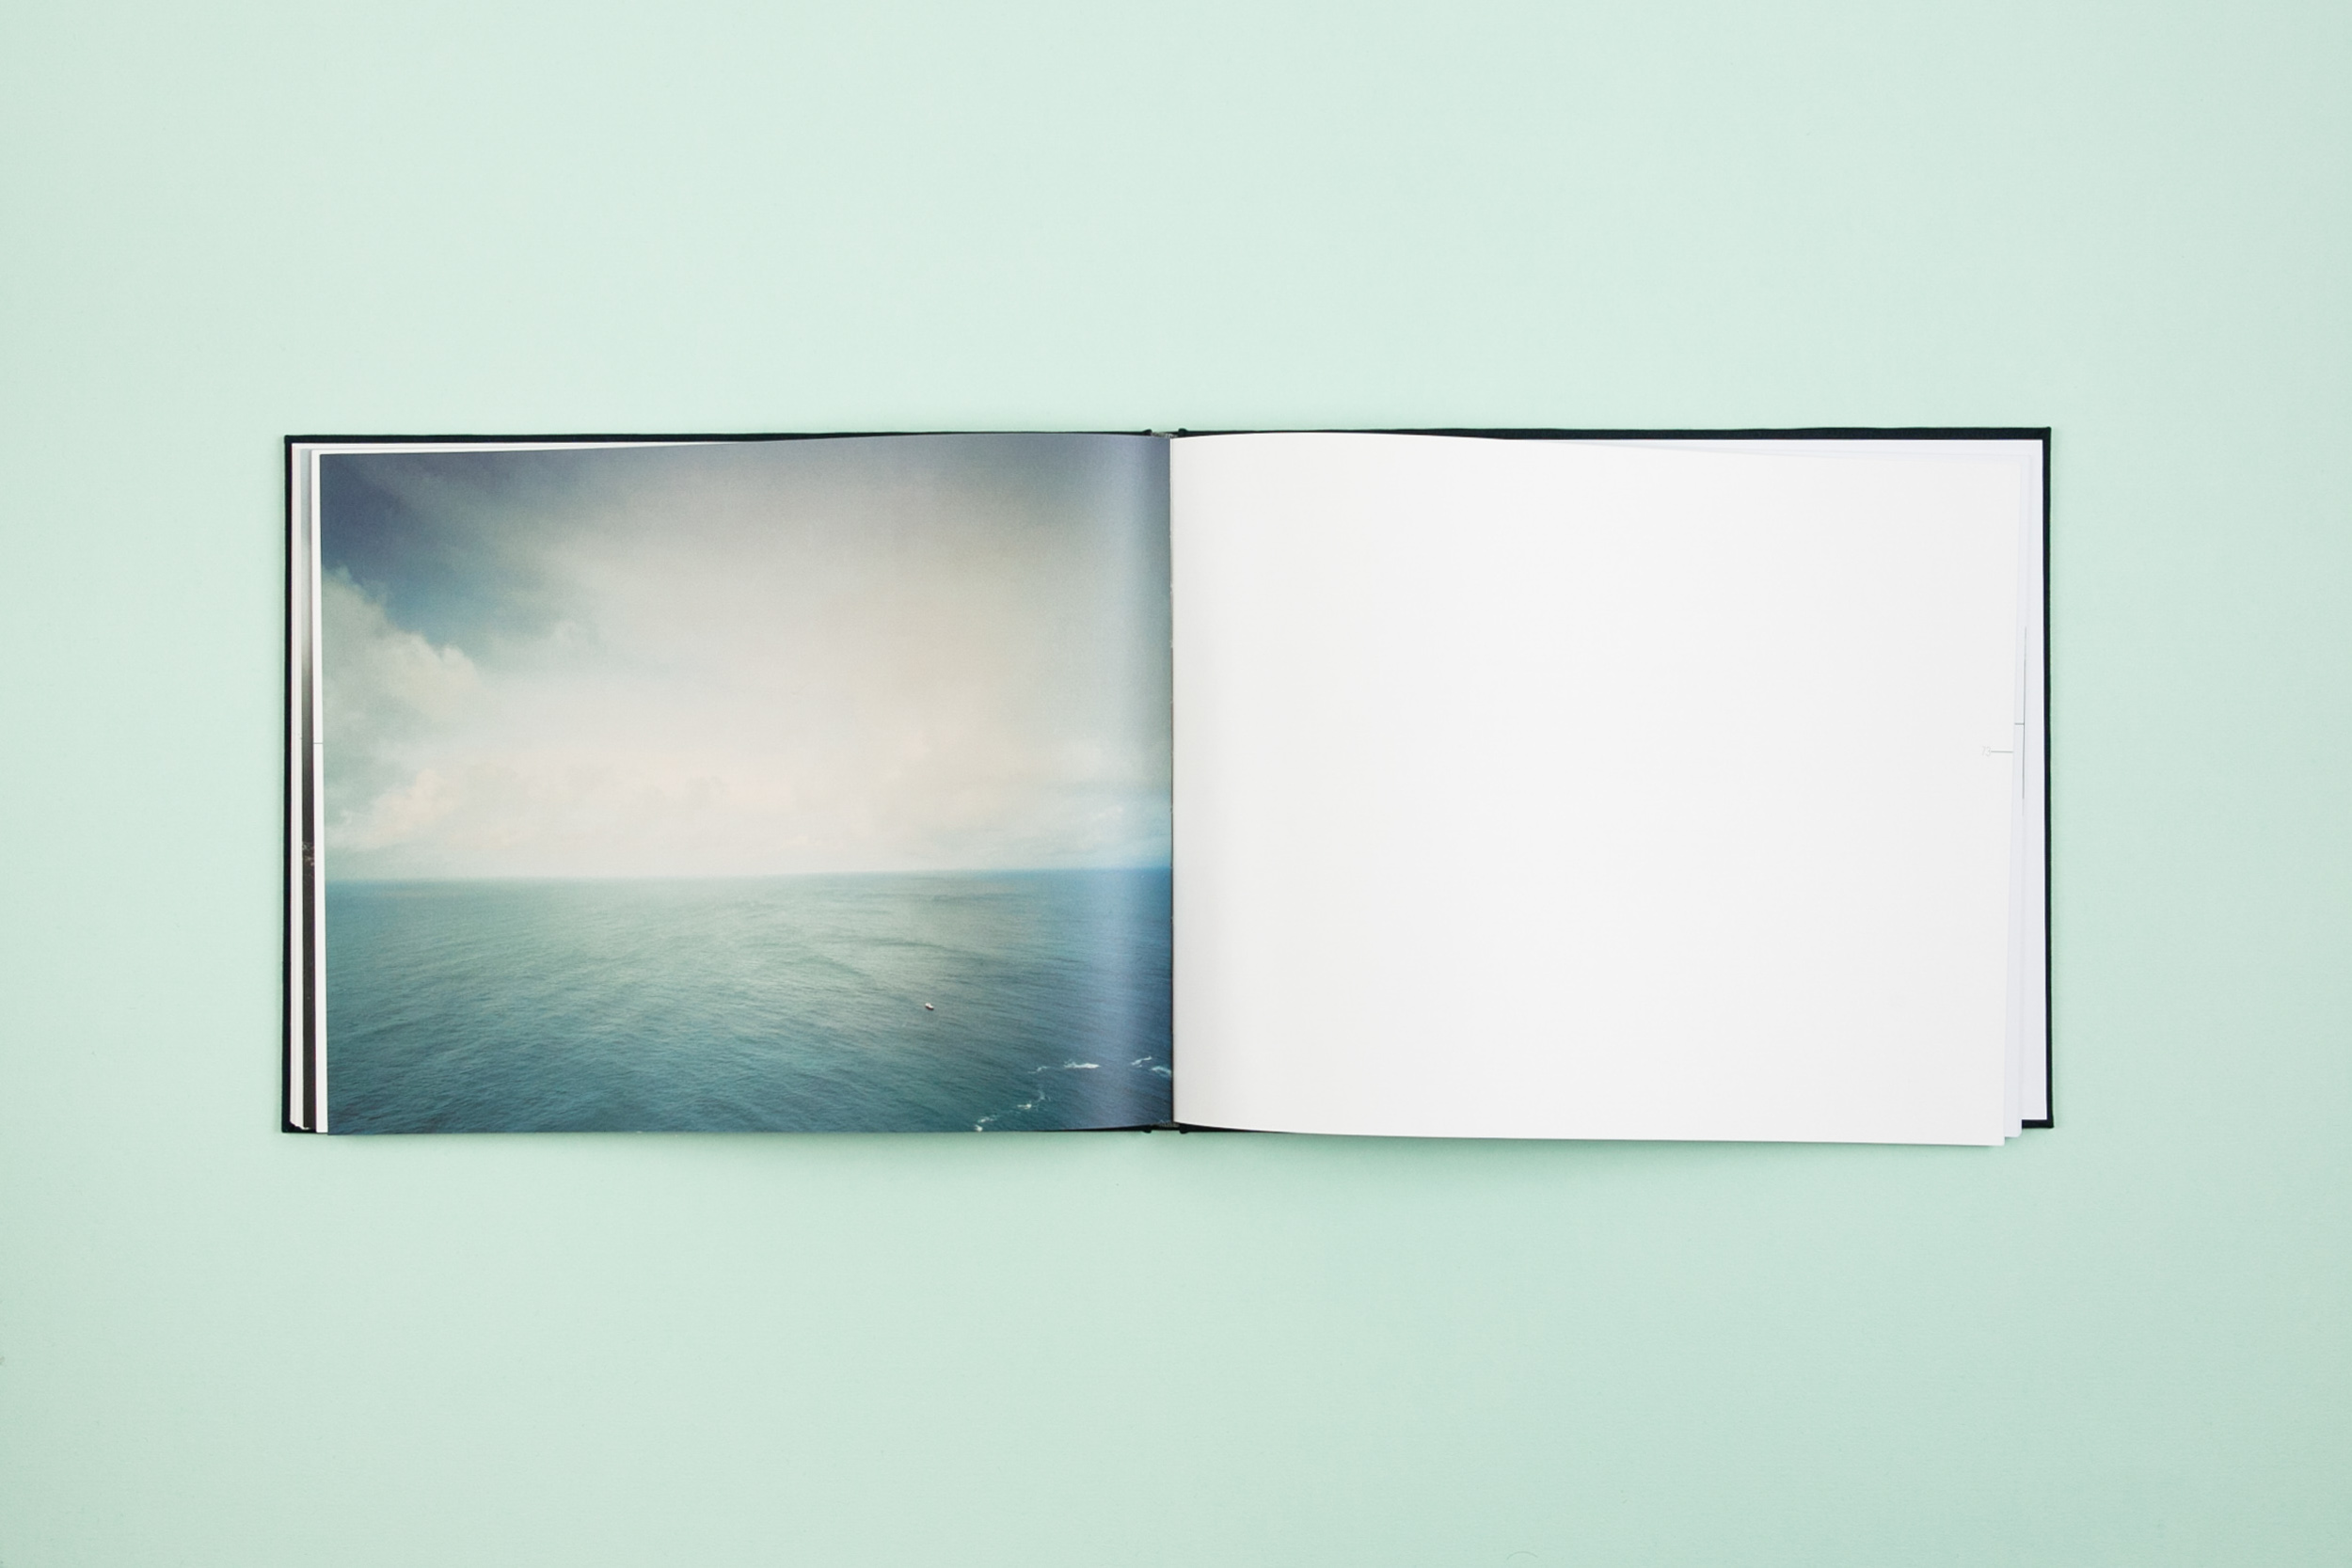 Book spread from self-published photobook 'Skyline' featuring photography by Eoghan Kavanagh and design by Read That Image.